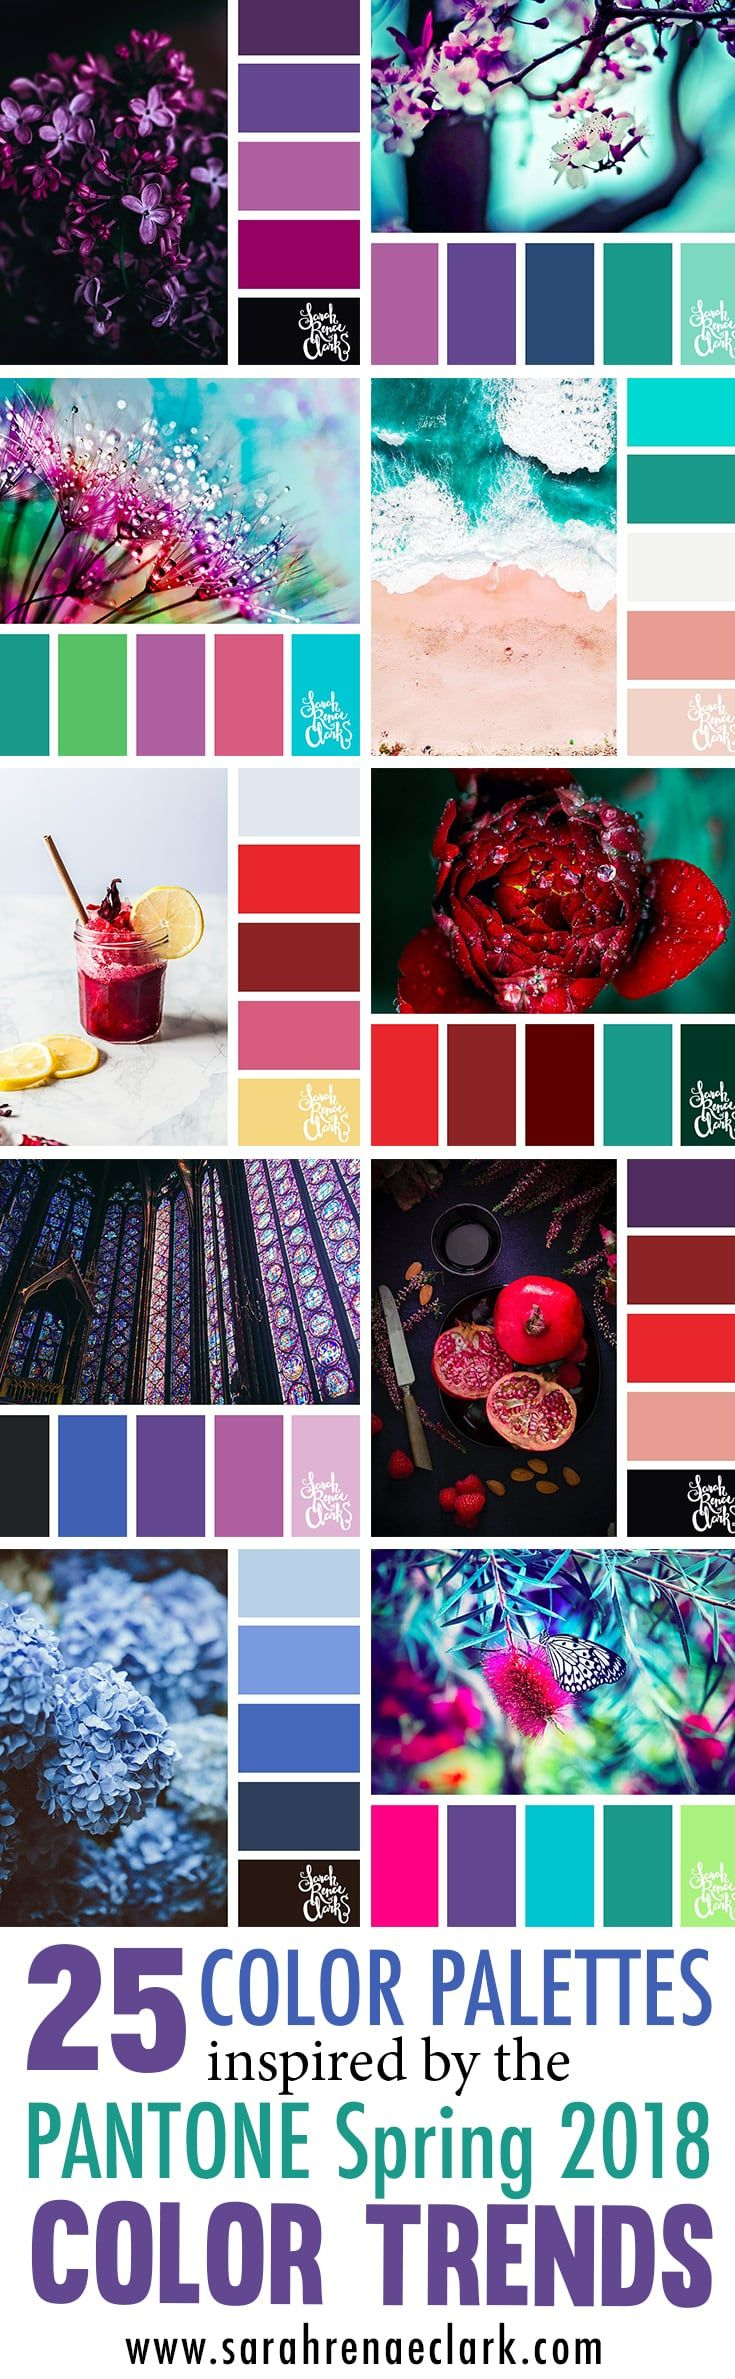 25 Color Palettes Inspired by the Pantone Spring 2018 Color Trends NY and London